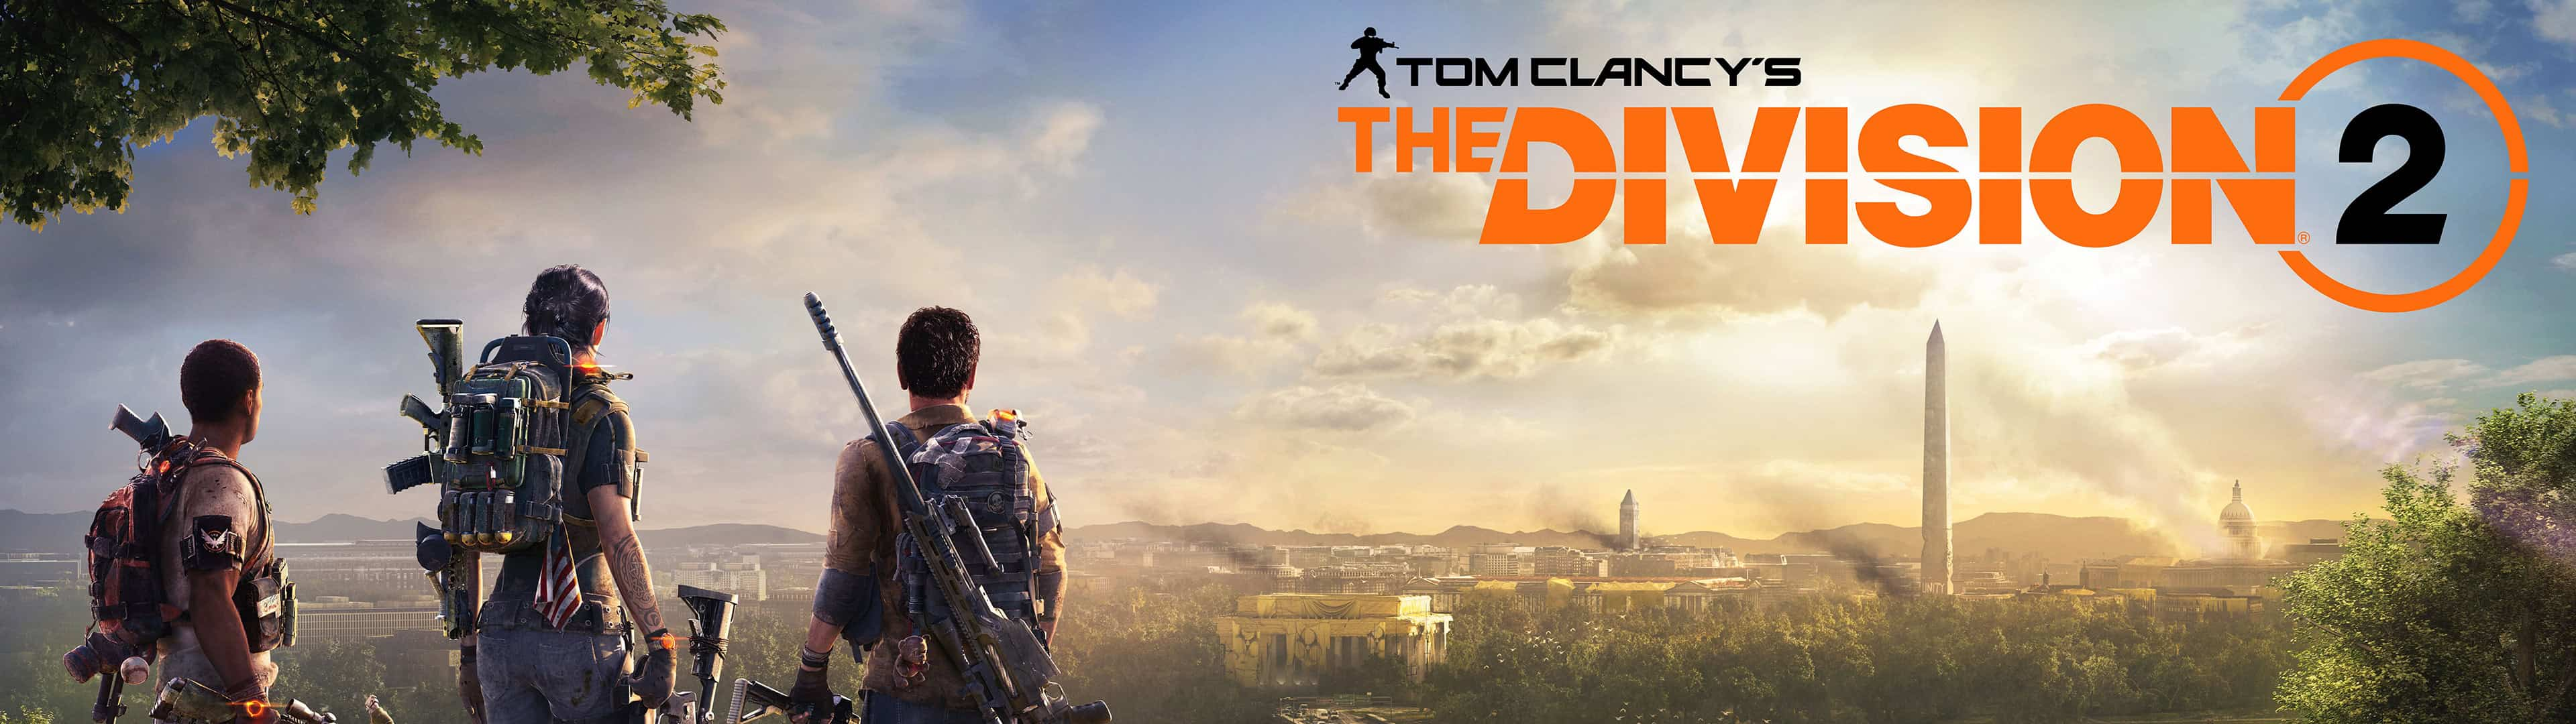 Tom Clancy The Division 2 Poster Dual Monitor Wallpaper | Pixelz